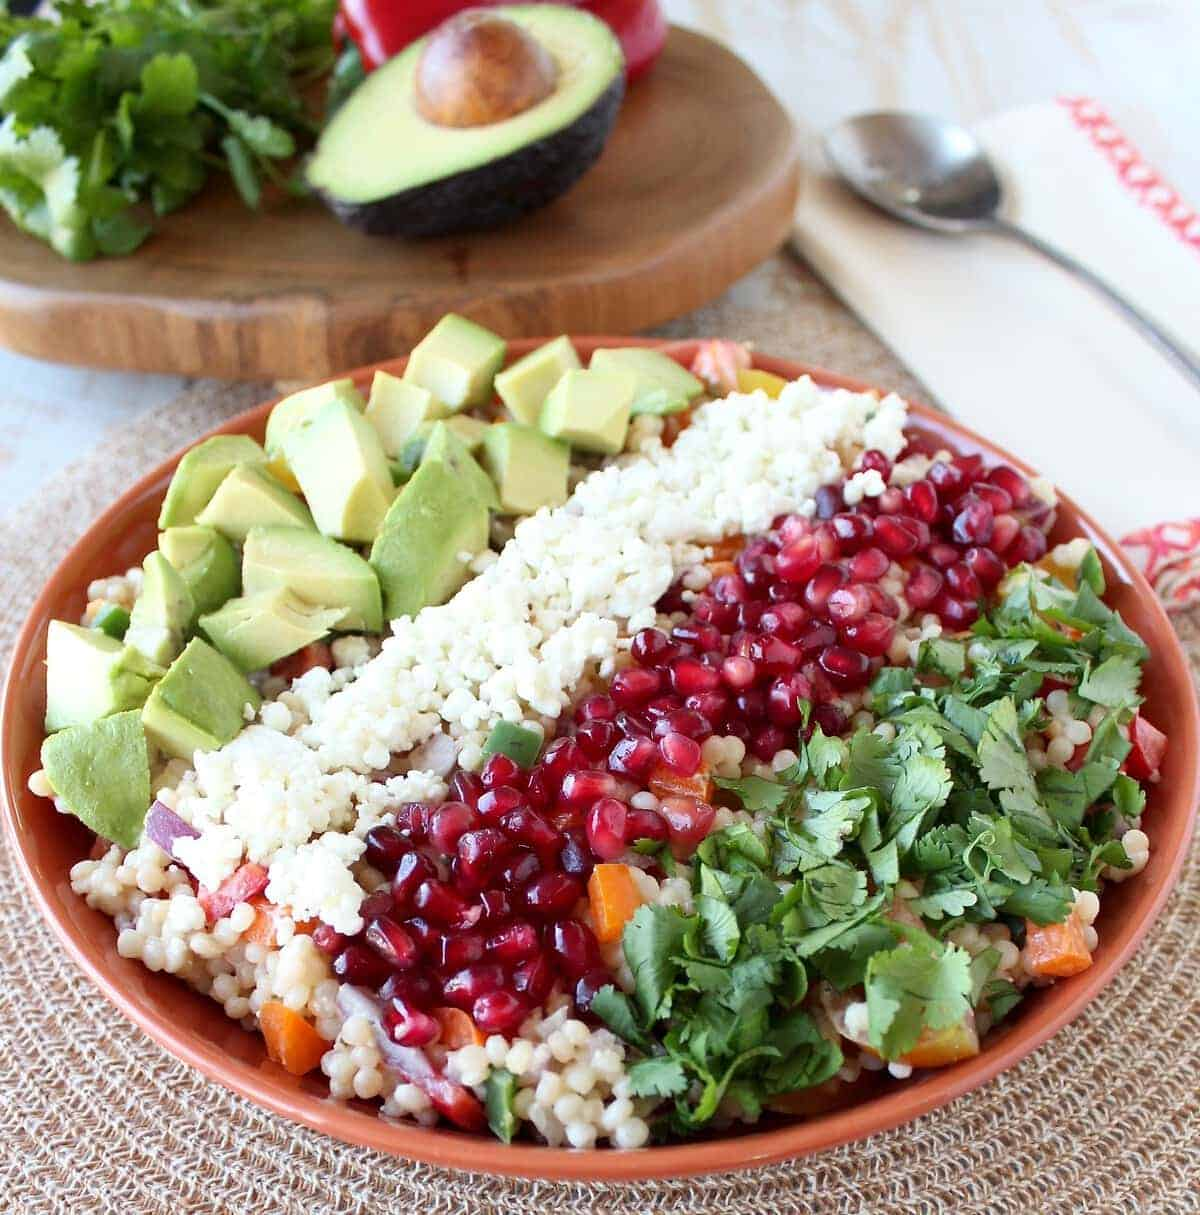 Israeli Couscous & Avocado Salad Recipe - WhitneyBond.com